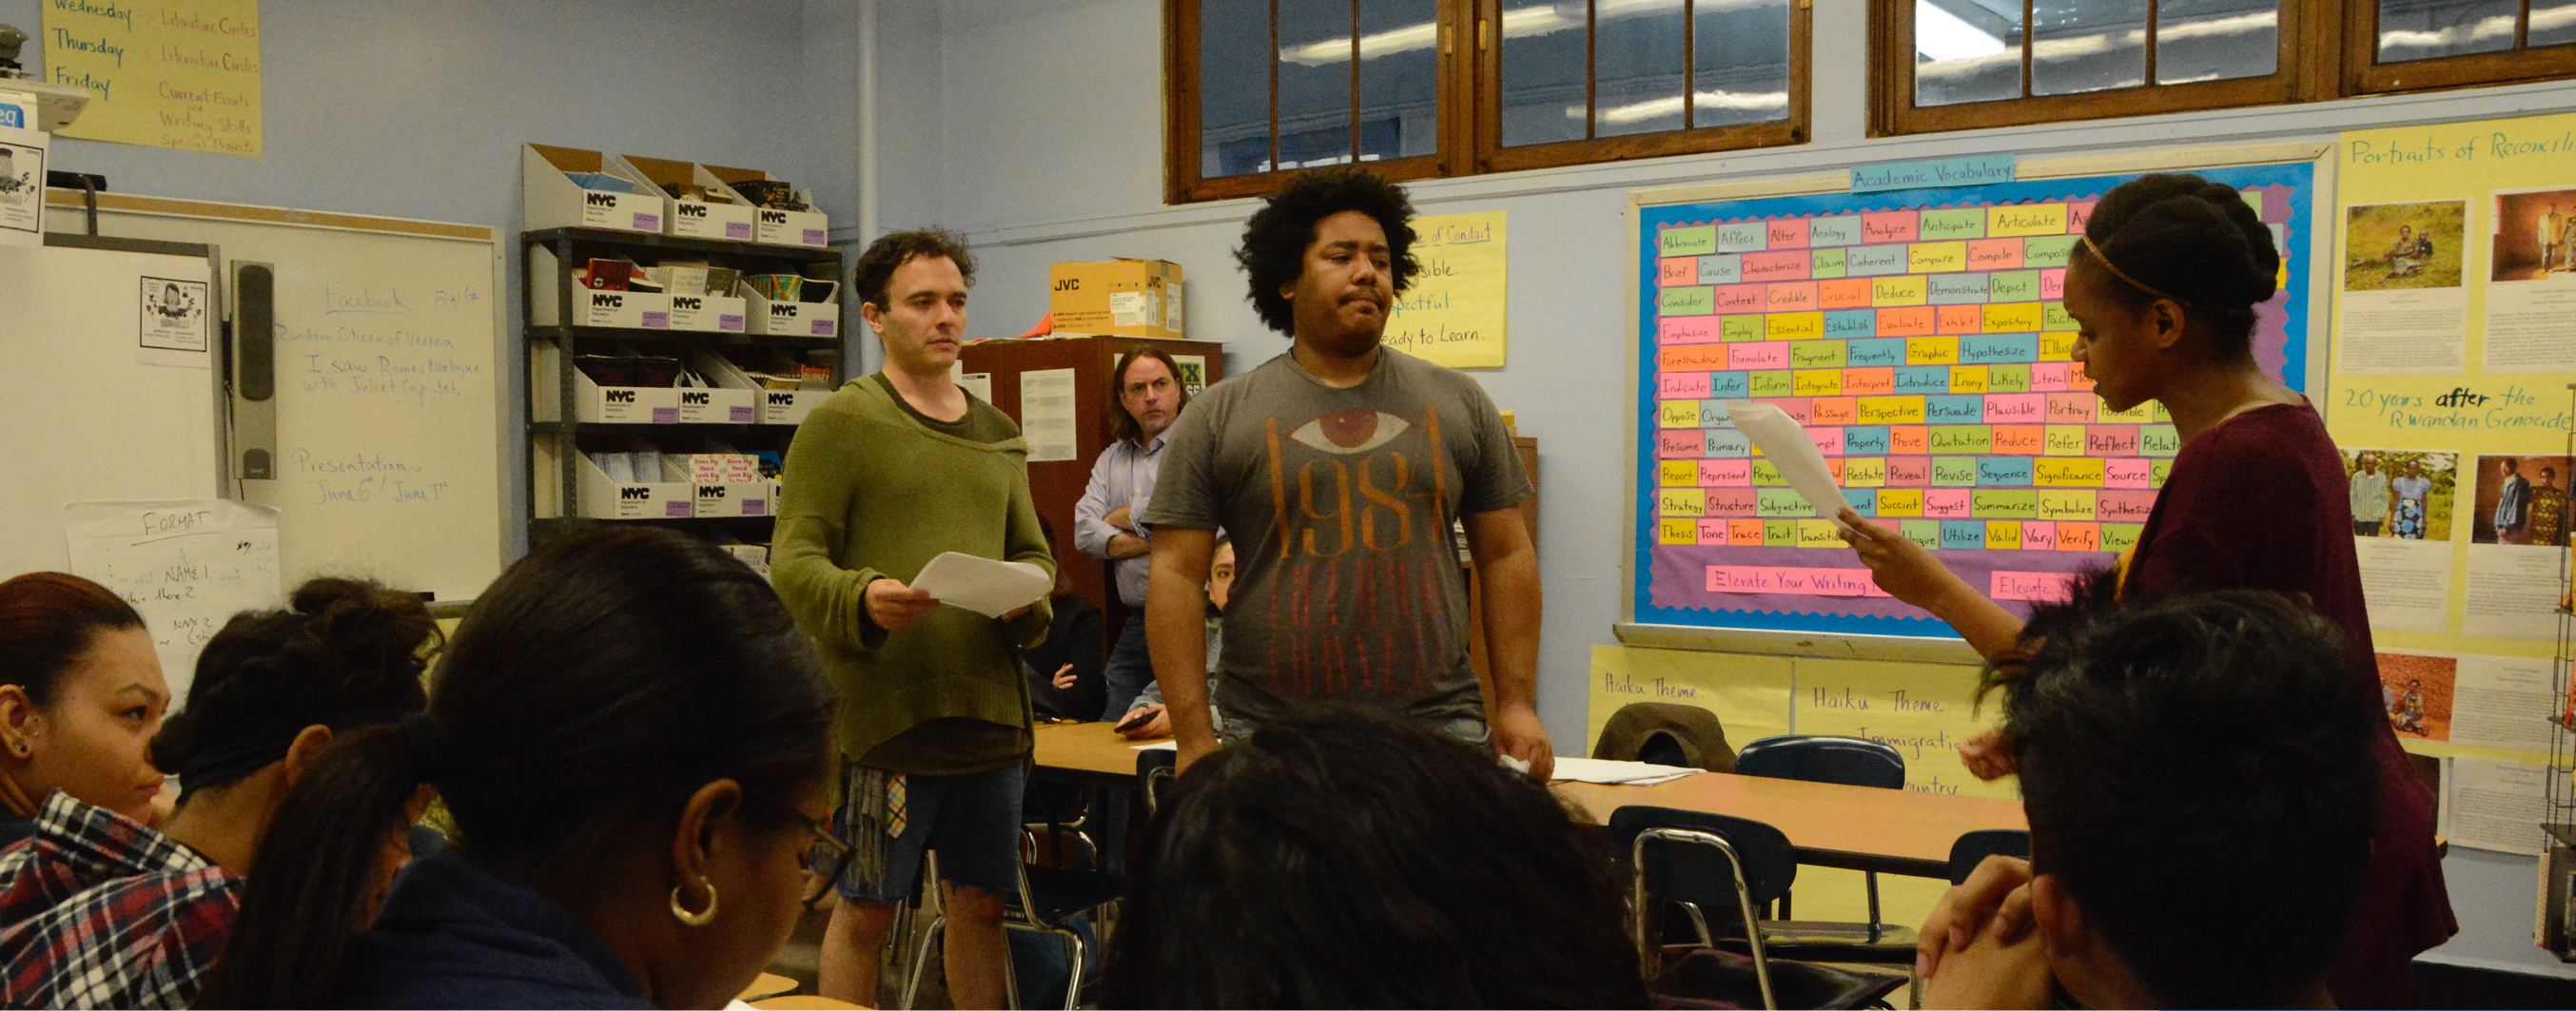 <p>Epic Theatre Ensemble, in partnership with the Bronx High School for Writing and Communications Arts, presented the conclusionof the Human RightsProject: Genocide. During 20 sessions, Epic&#8217;s Teaching Artists, work with high-school students developing a 5-minute original play that explores the social impact of historical events associated with human rights. This [&hellip;]</p>